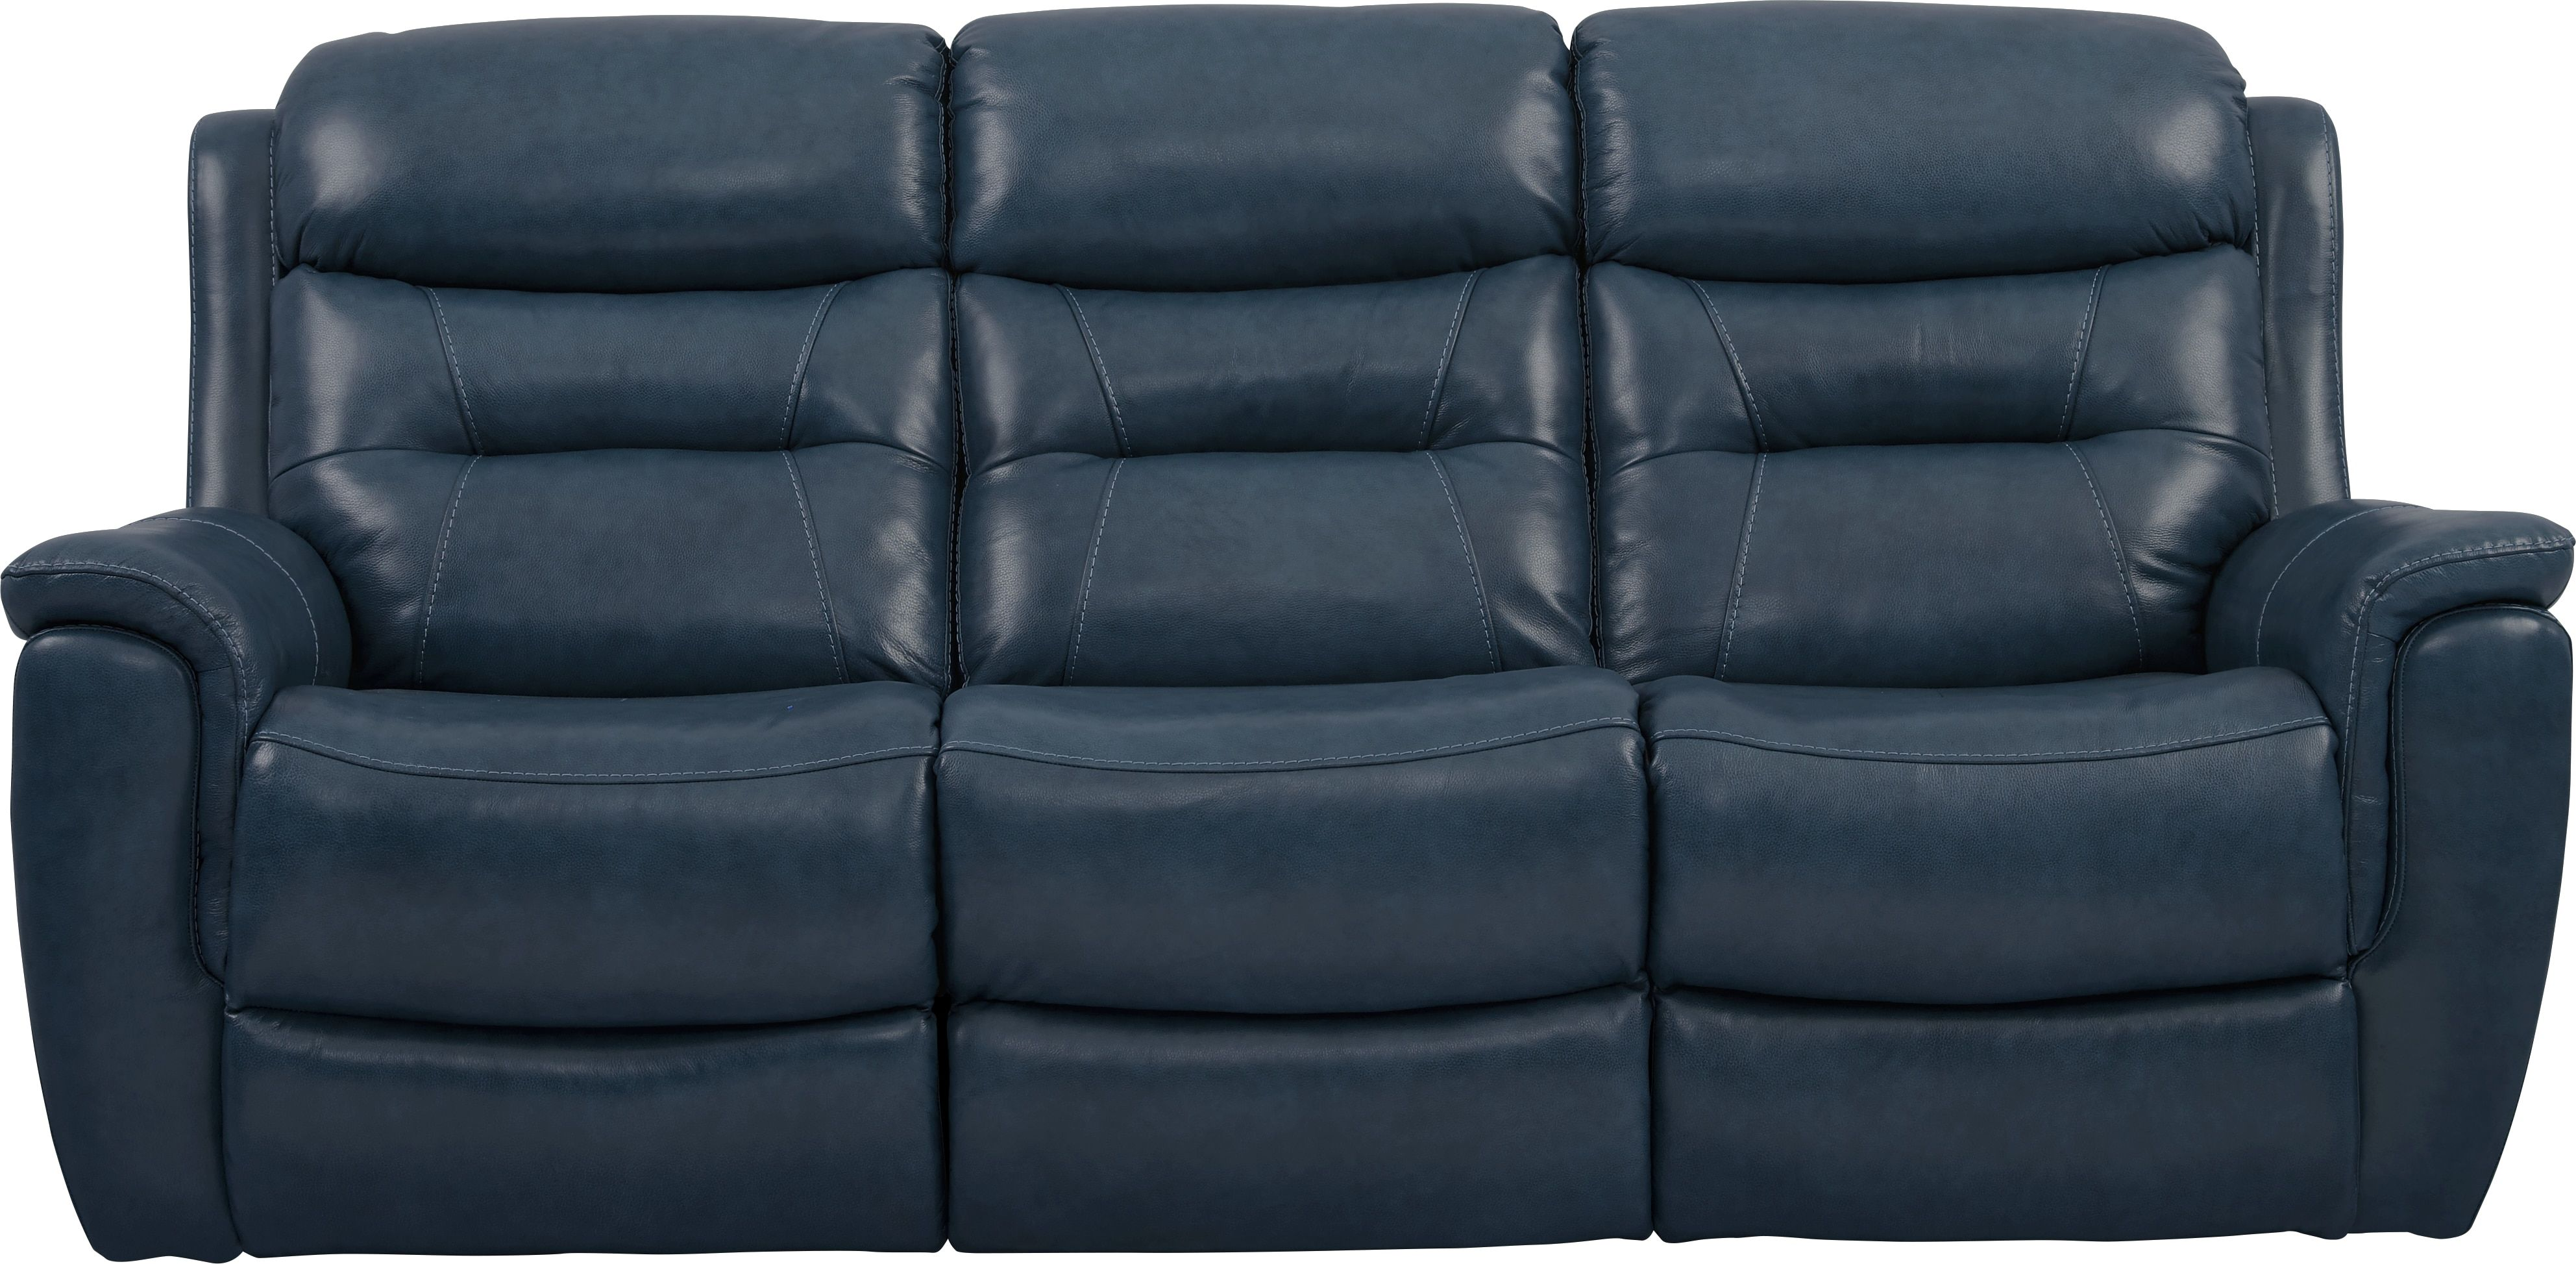 Wondrous Sabella Navy Leather Reclining Sofa In 2019 Leather Short Links Chair Design For Home Short Linksinfo